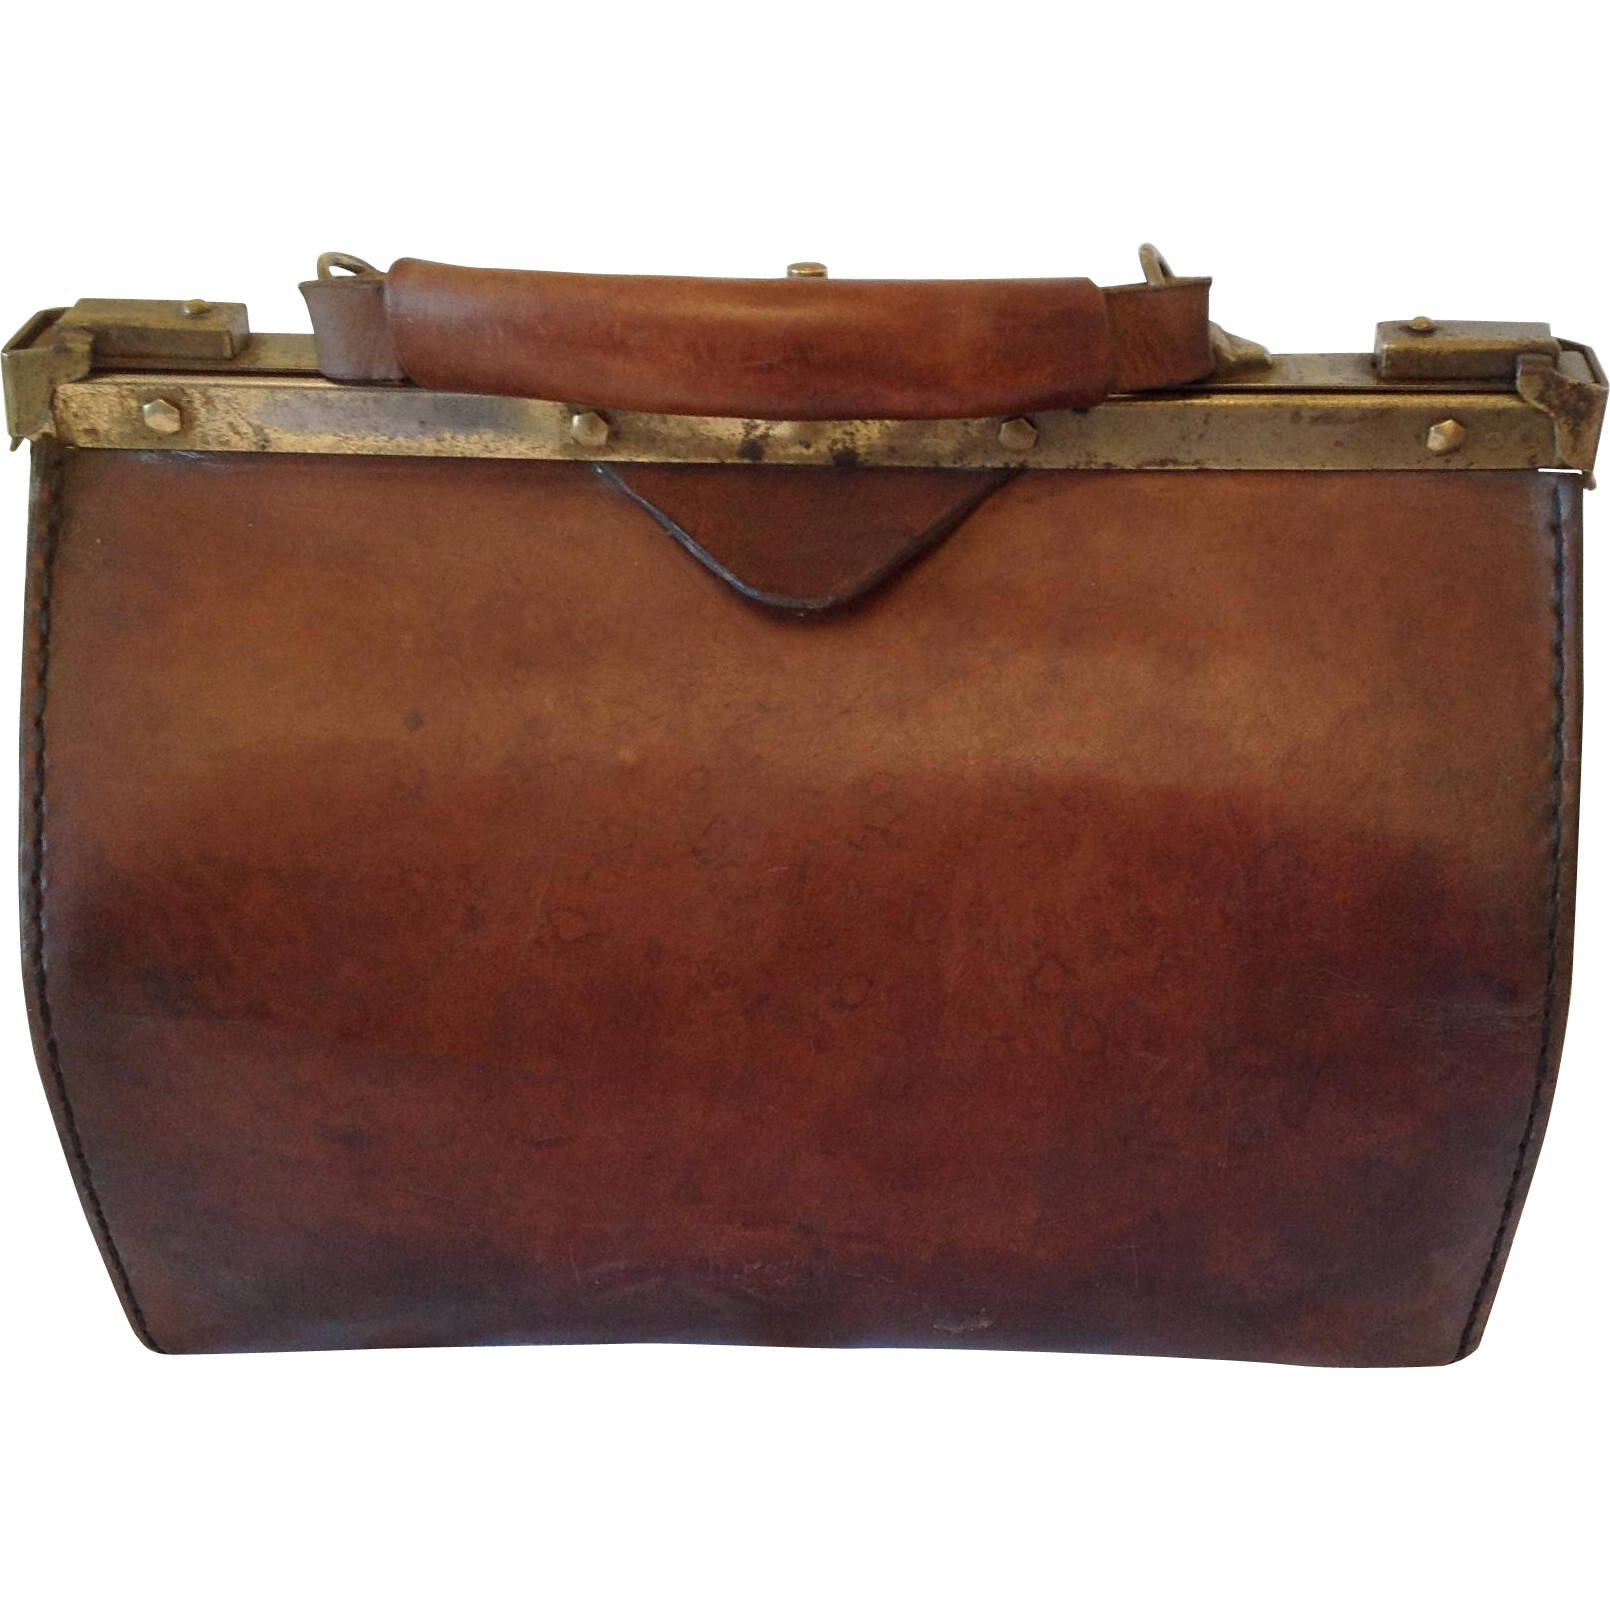 Luggage clip vintage suitcase. French gladstone doctors bag